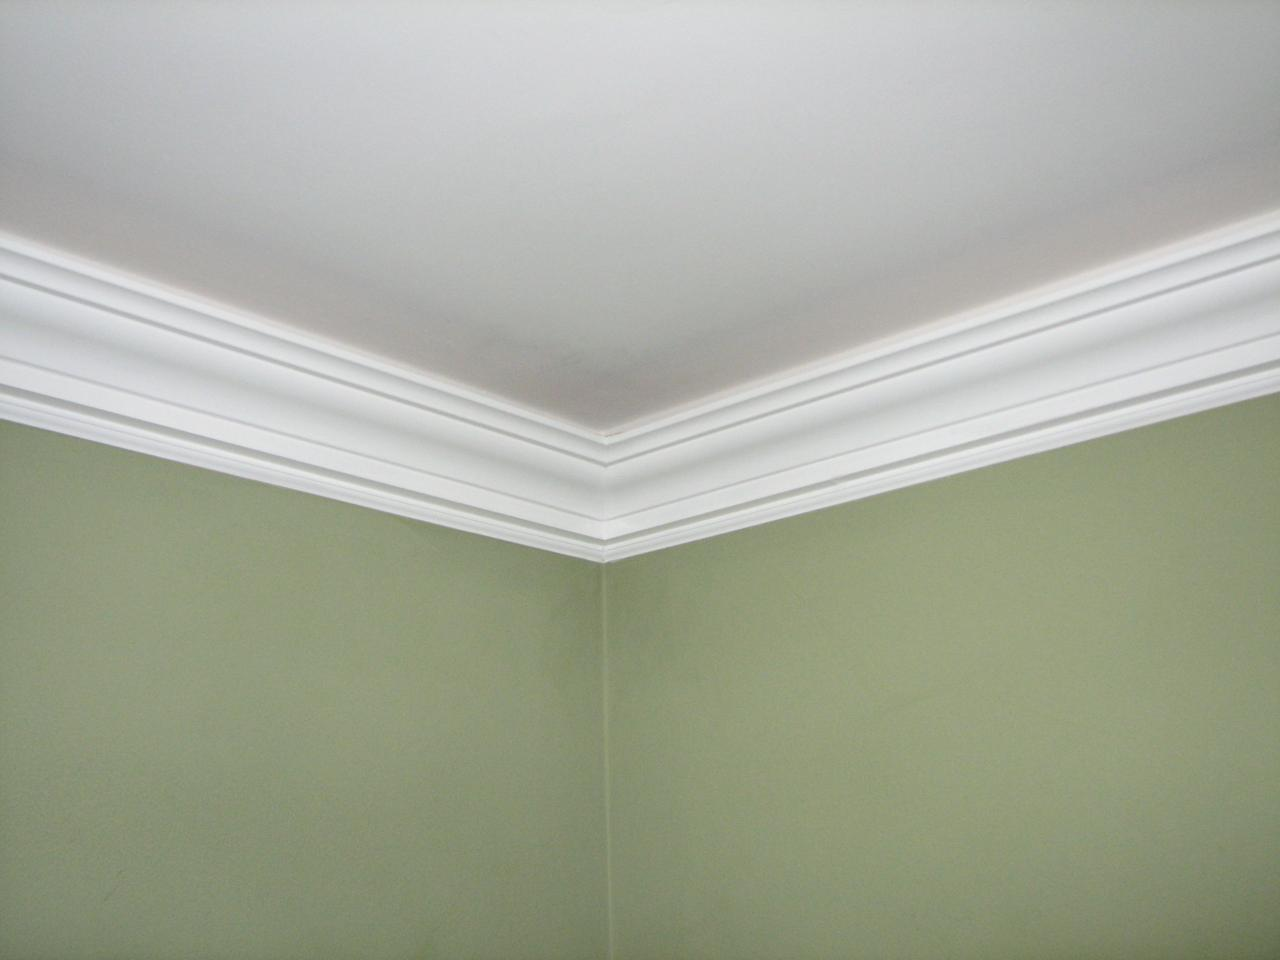 Chelsea talks homes i share my knowledge of the for Standard crown molding size